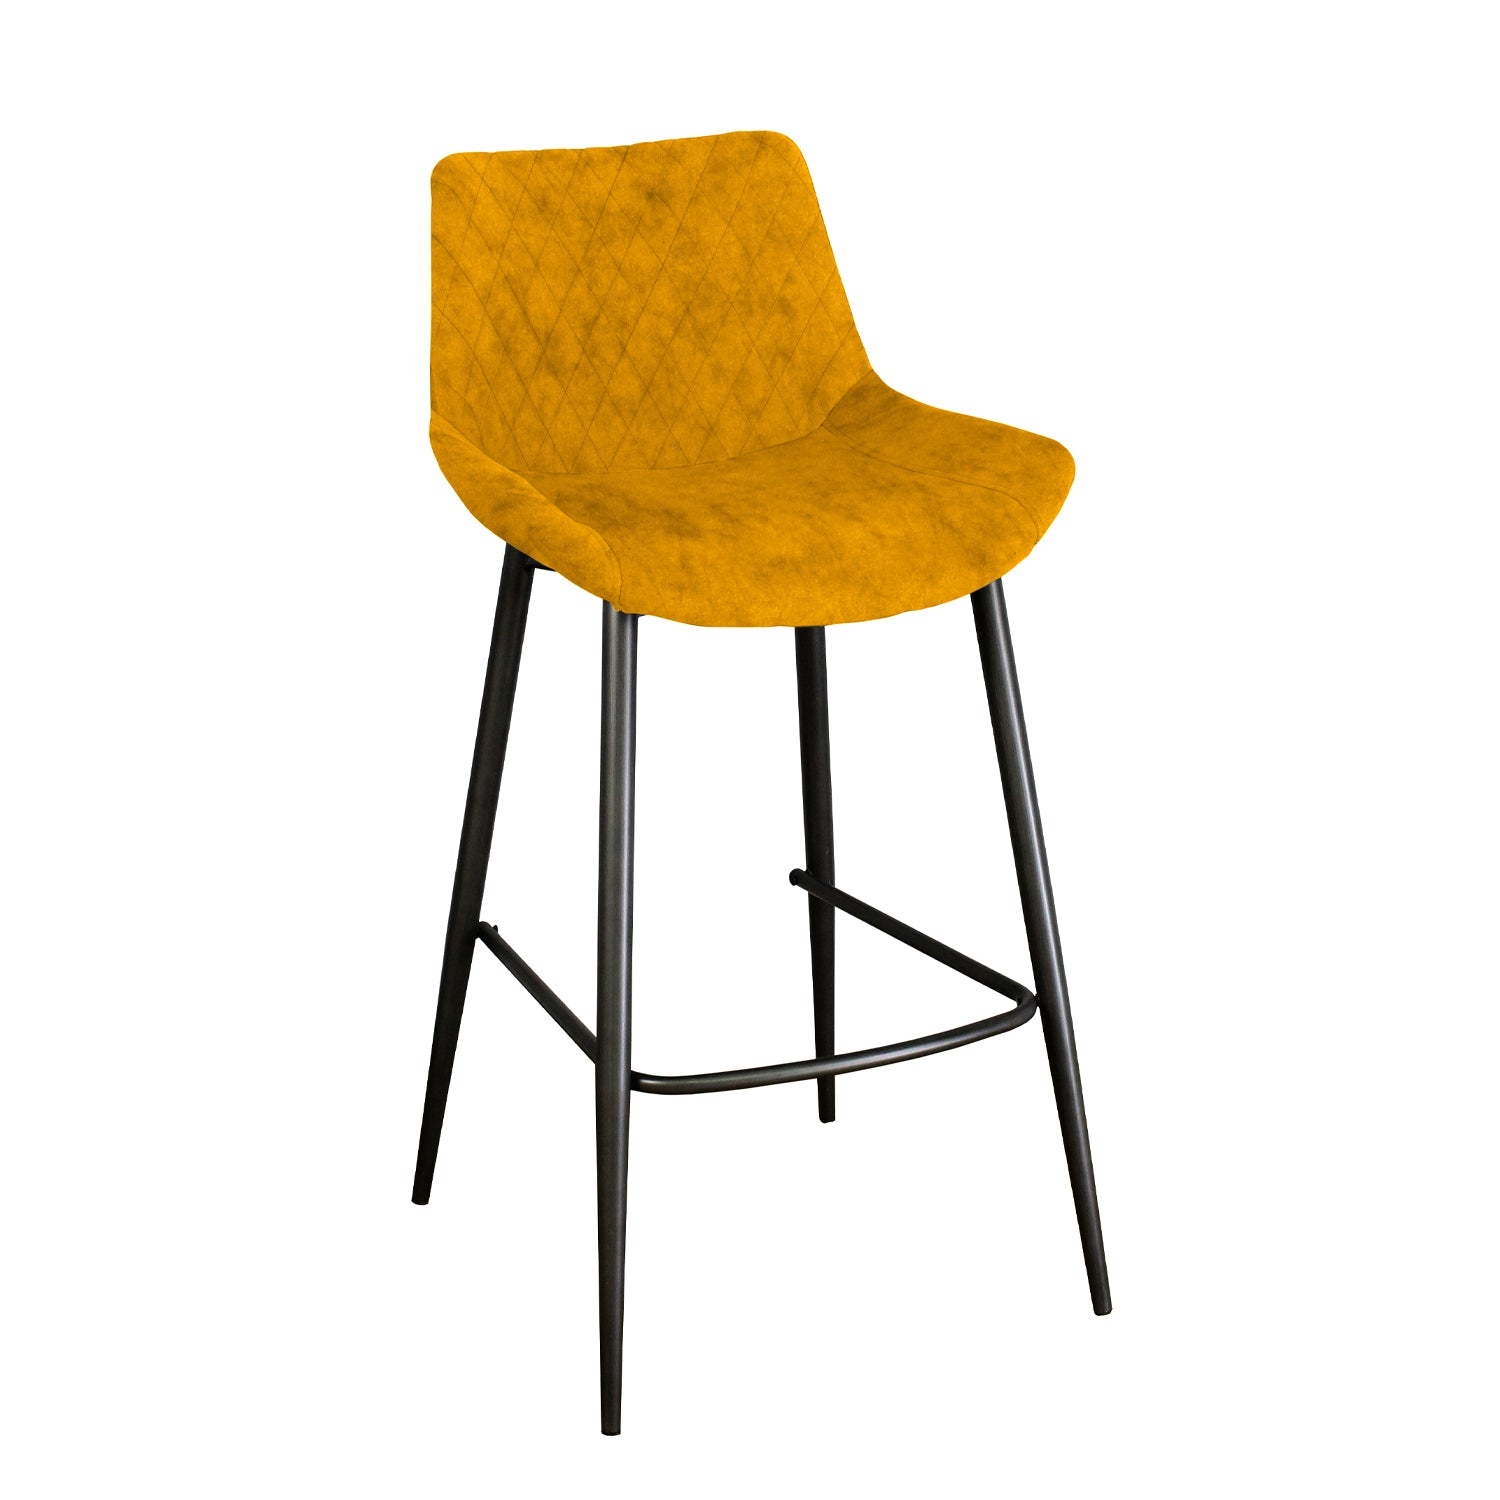 Axel Bar Stool - Saffron